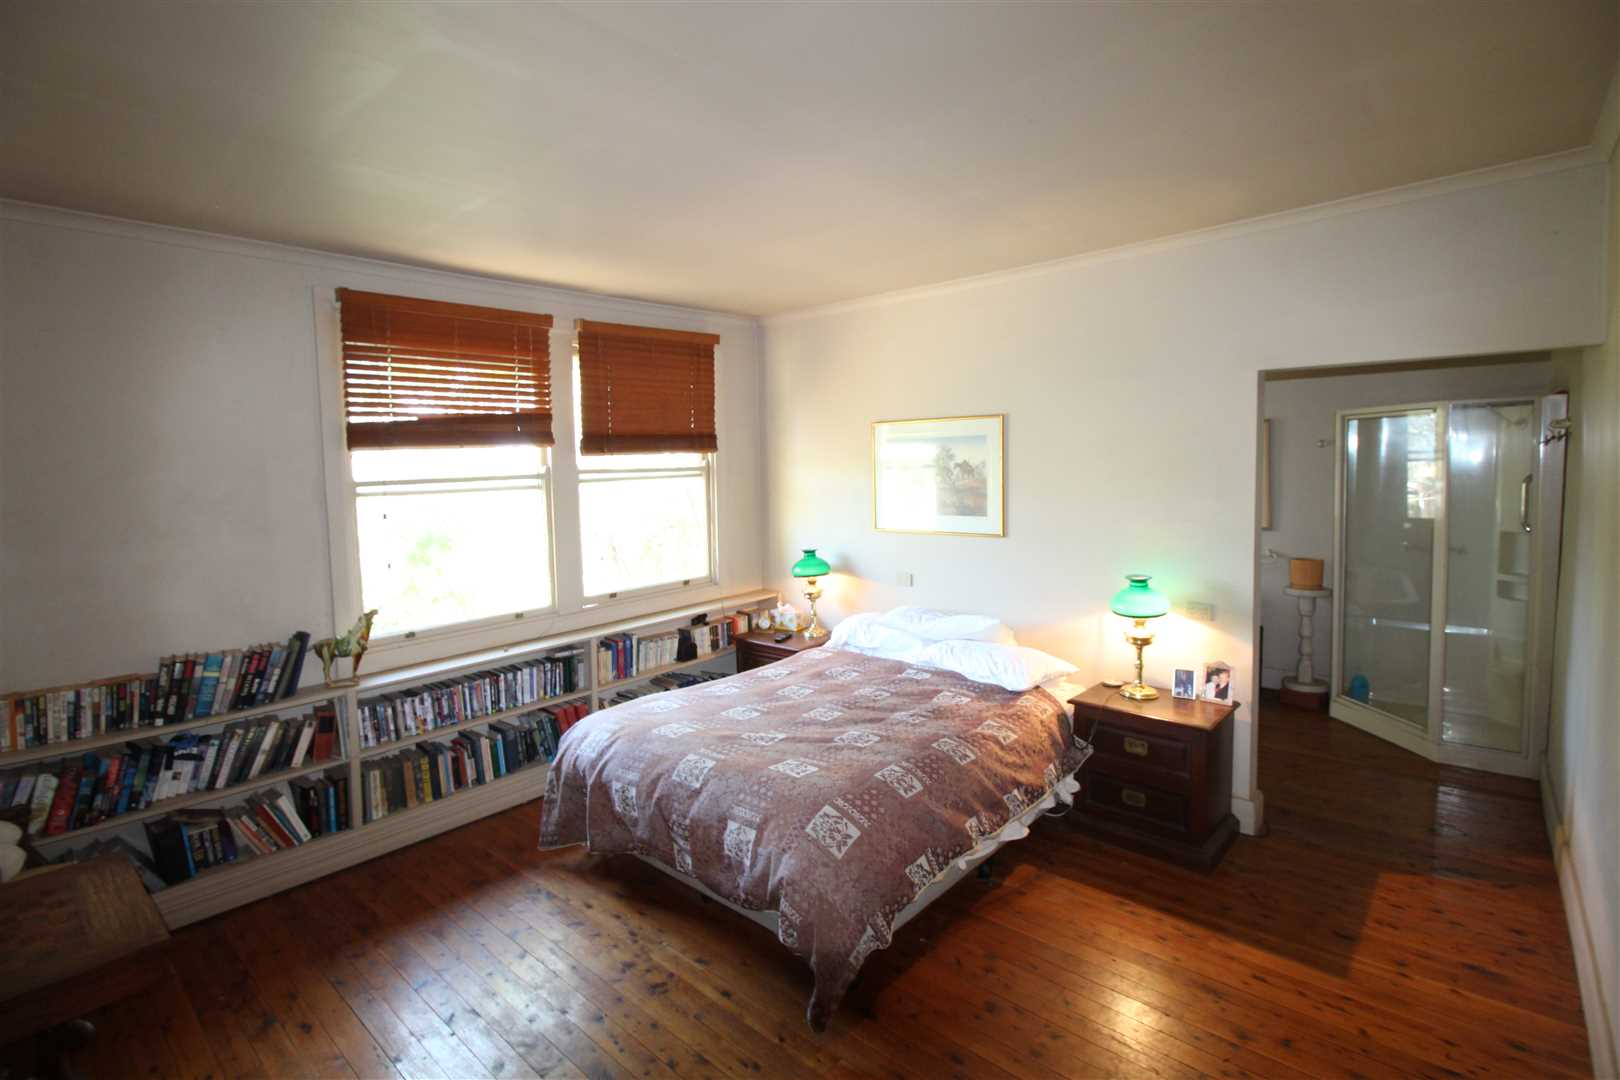 Master Bedroom with ensuite and walk in robe